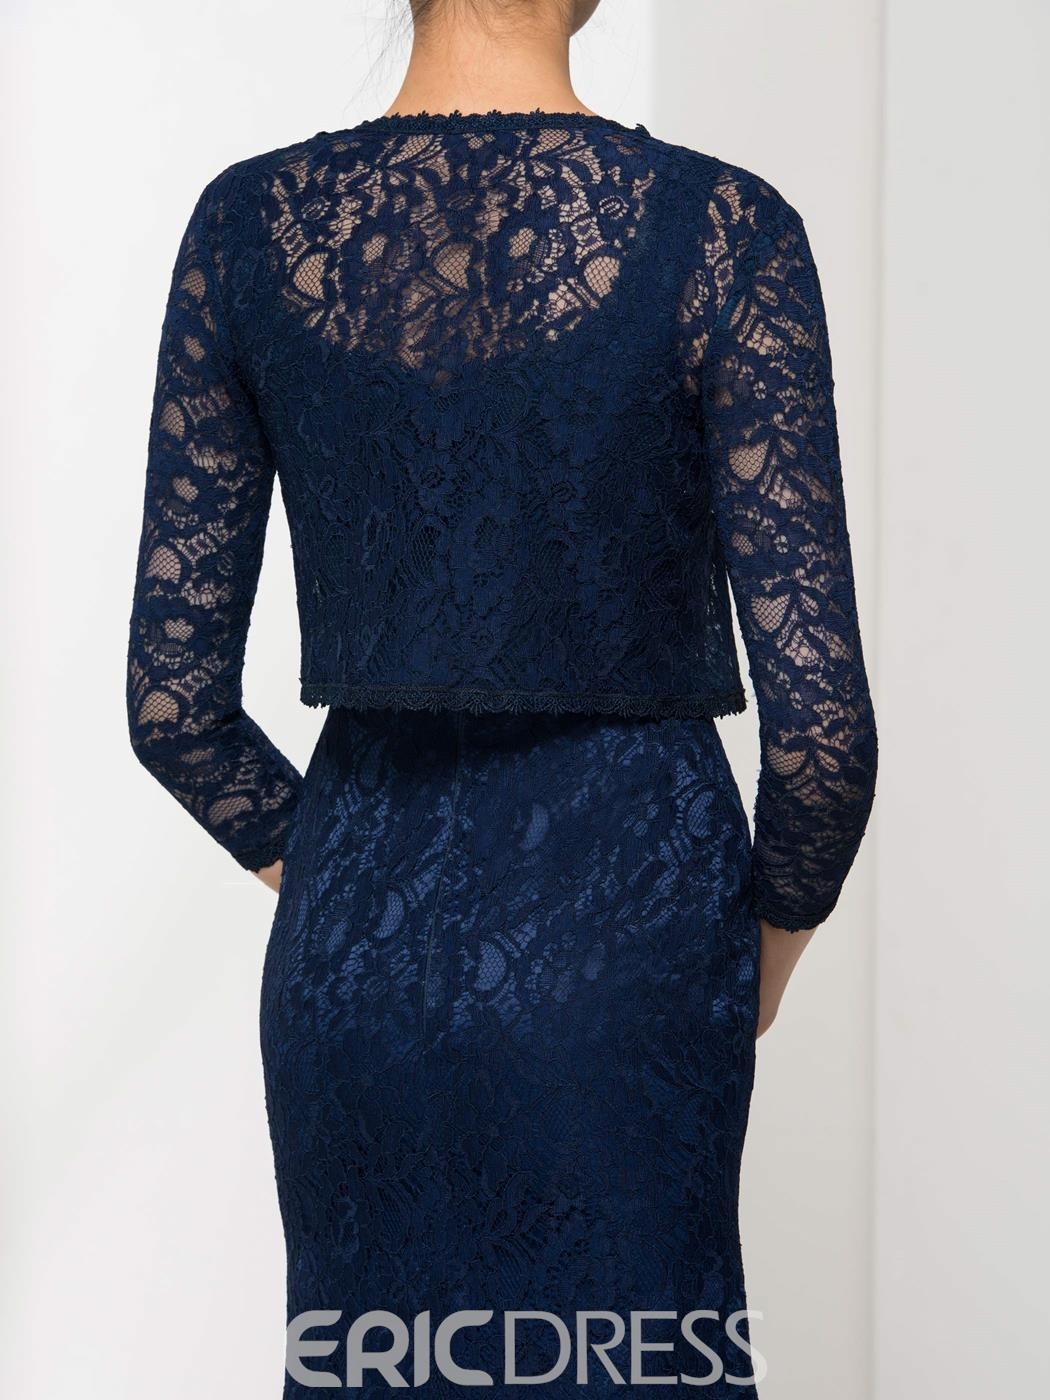 Ericdress Elegant Straps Lace Mother Of The Bride Dress With Jacket